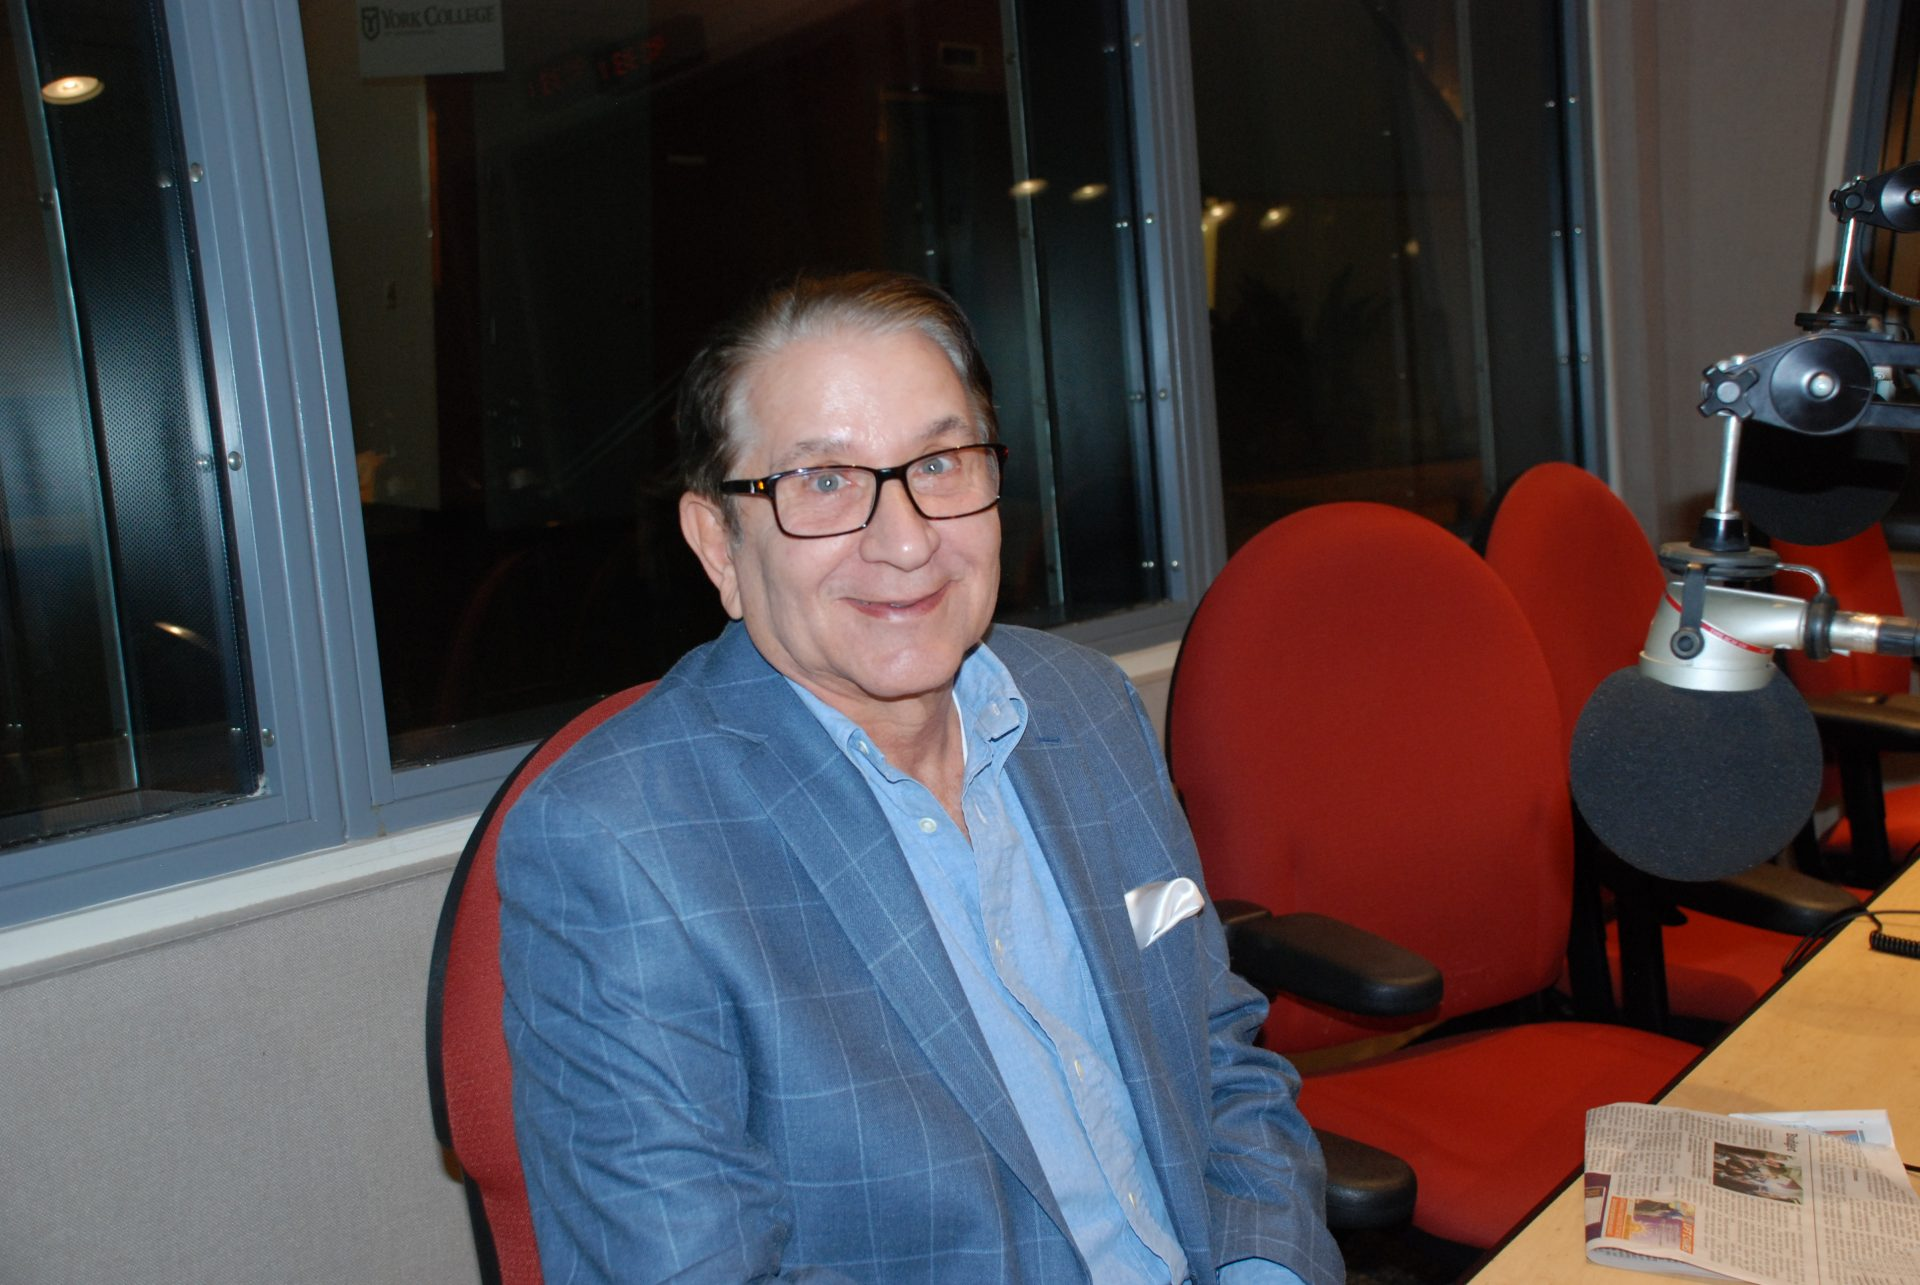 Dr. G. Terry Madonna appeared on Smart Talk on February 5, 2020.